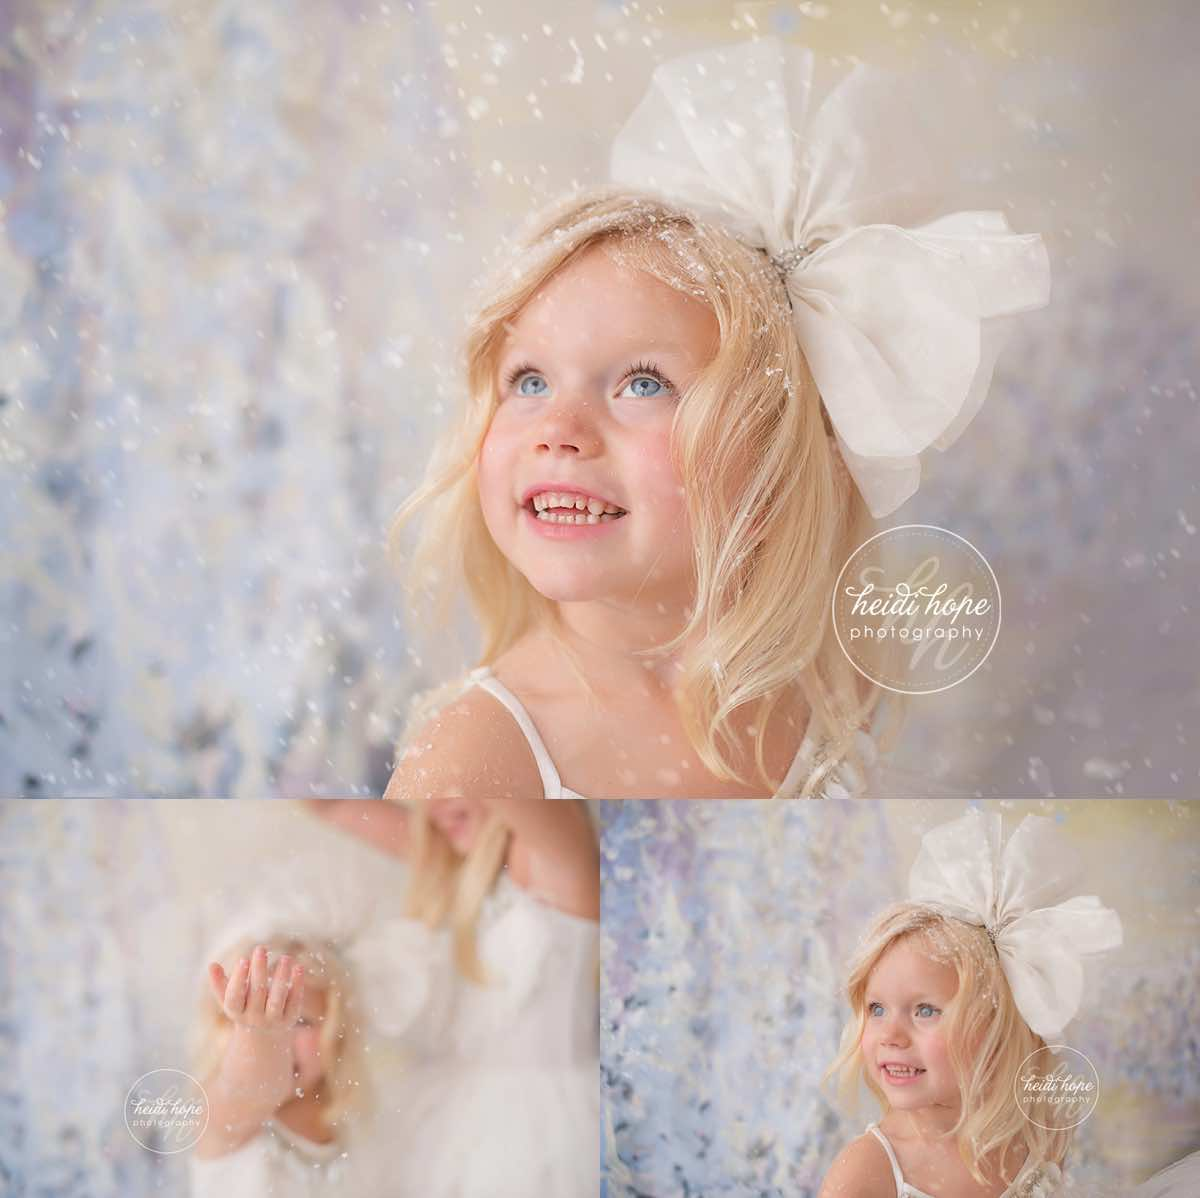 heidi hope backdrop frozen winter wonderland mini session with tutudumonde and snow 4